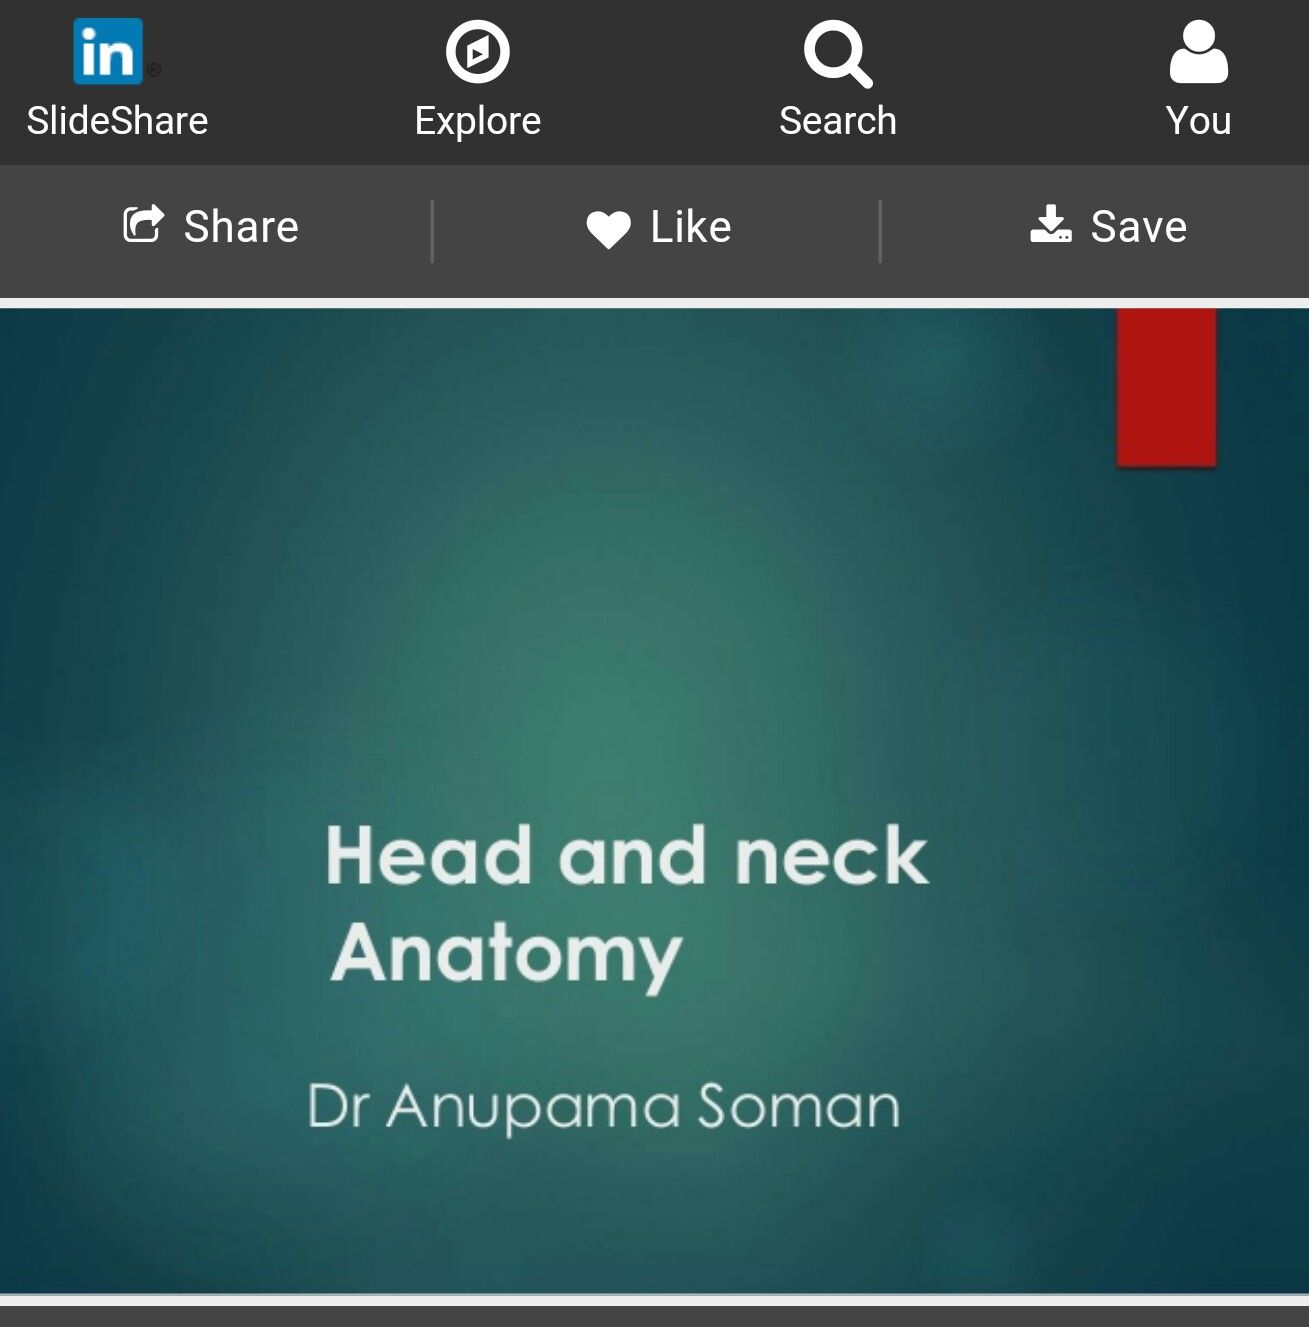 Head and neck anatomy powerpoint | Head & Neck Anatomy | Pinterest ...